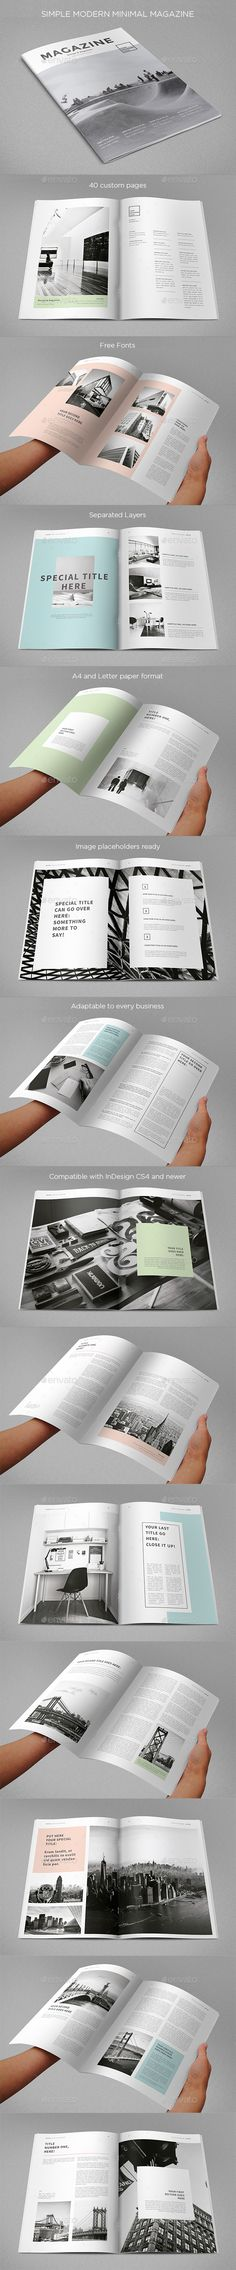 Simple Minimal Clean Magazine Template InDesign INDD #design Download: http://graphicriver.net/item/simple-minimal-clean-magazine/14286878?ref=ksioks